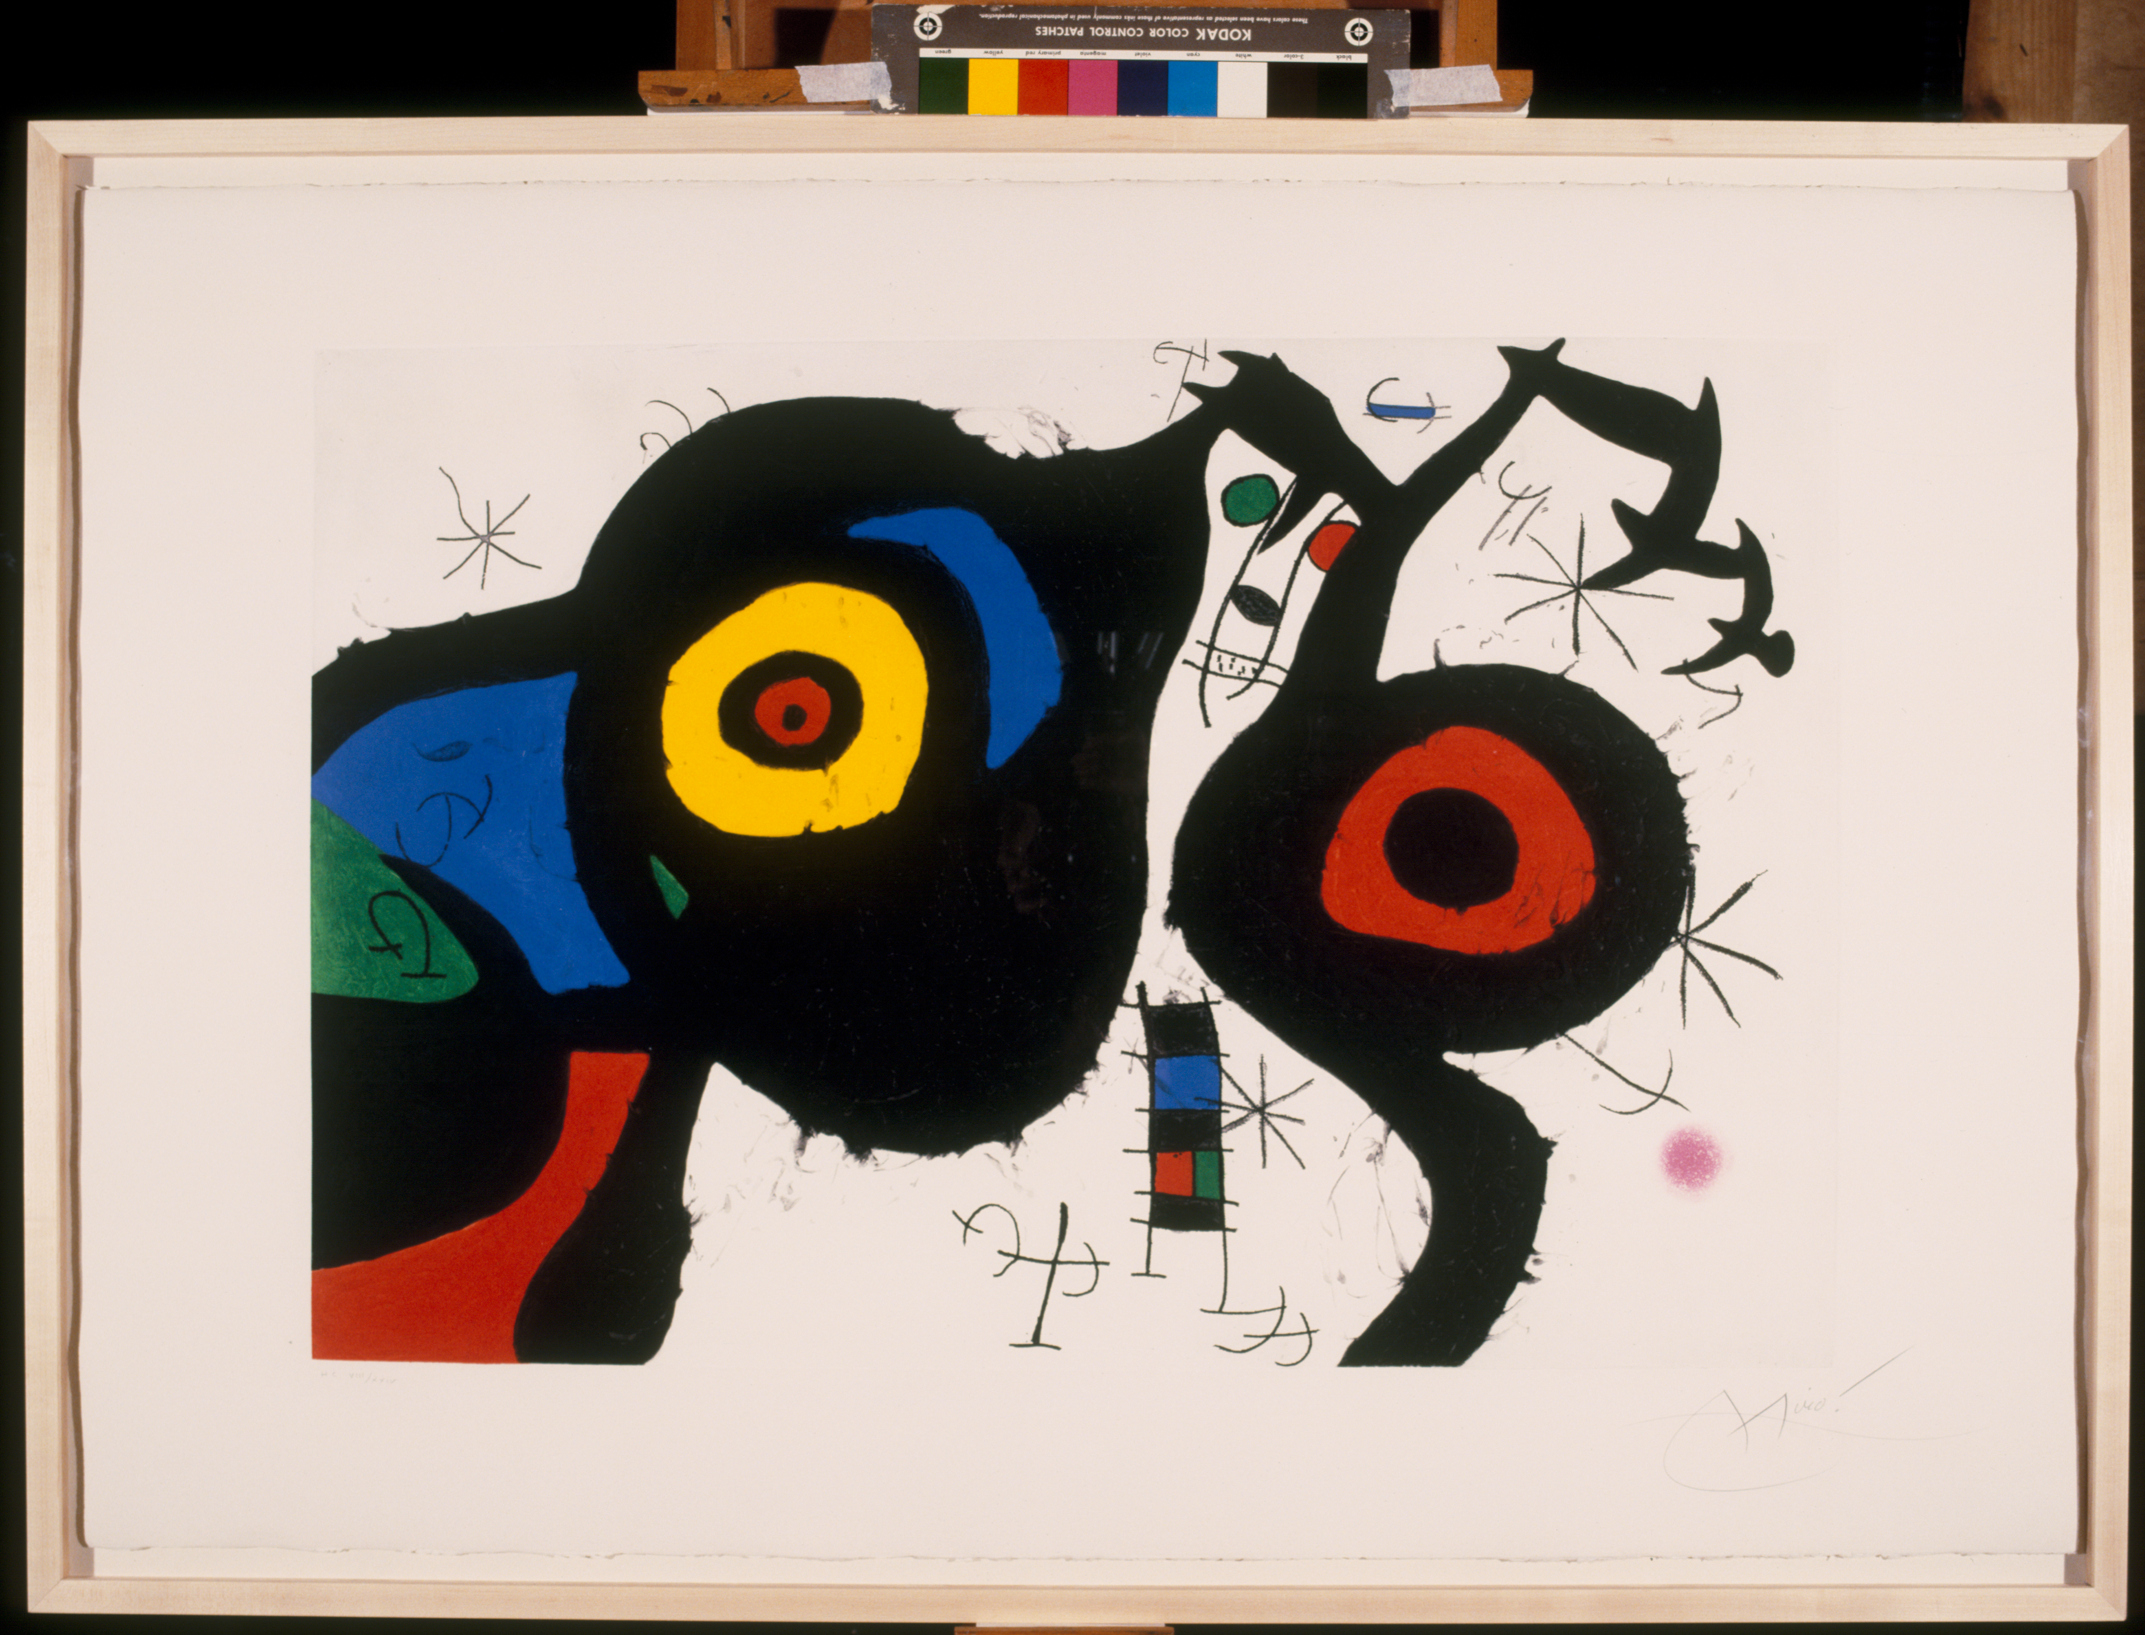 Joan Miró I due amici, 1969 Acquaforte, acquatinta e carburo di silicio